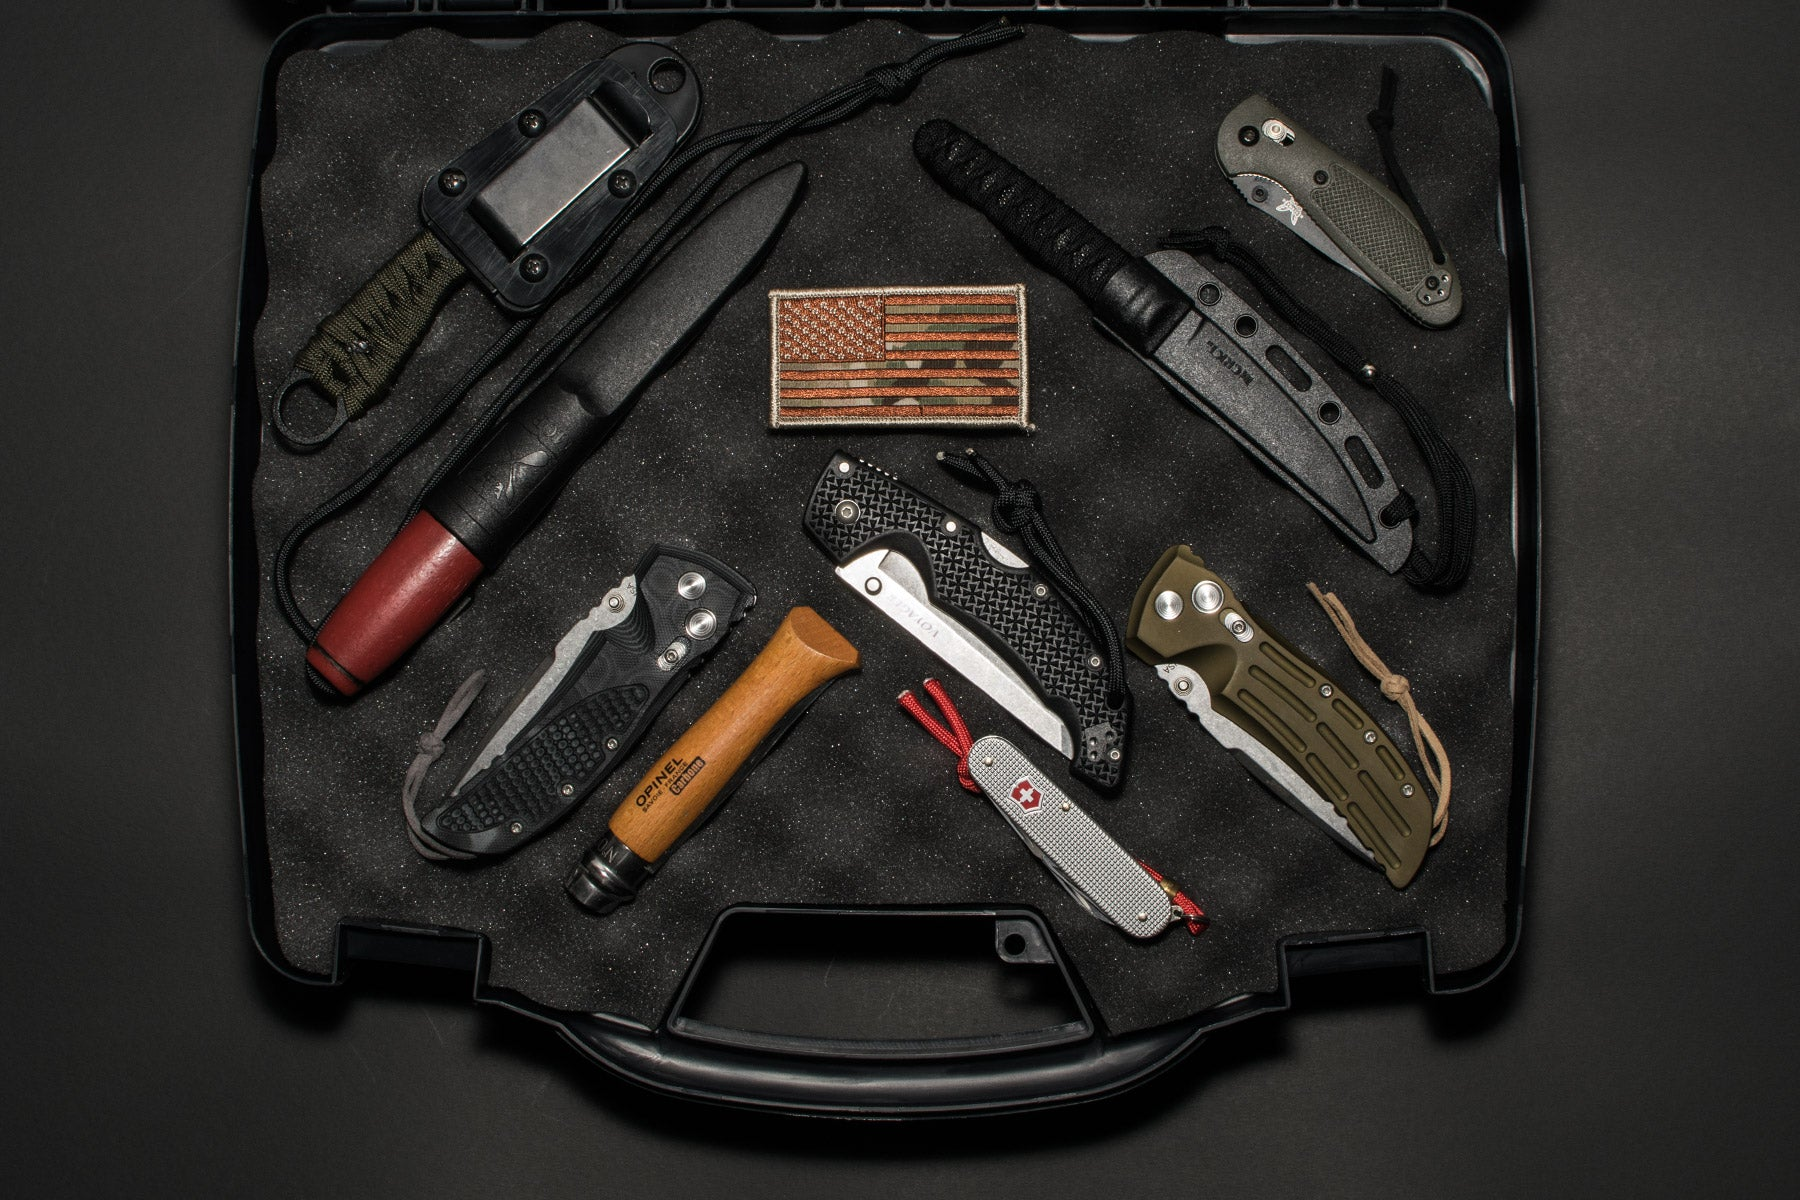 For gear that is not in my everyday carry rotation but I want it to be easy to access I store it in a hard shell pistol case. & EDC Gear Storage u2022 Keeping it secure and Organized. - Recycled ...